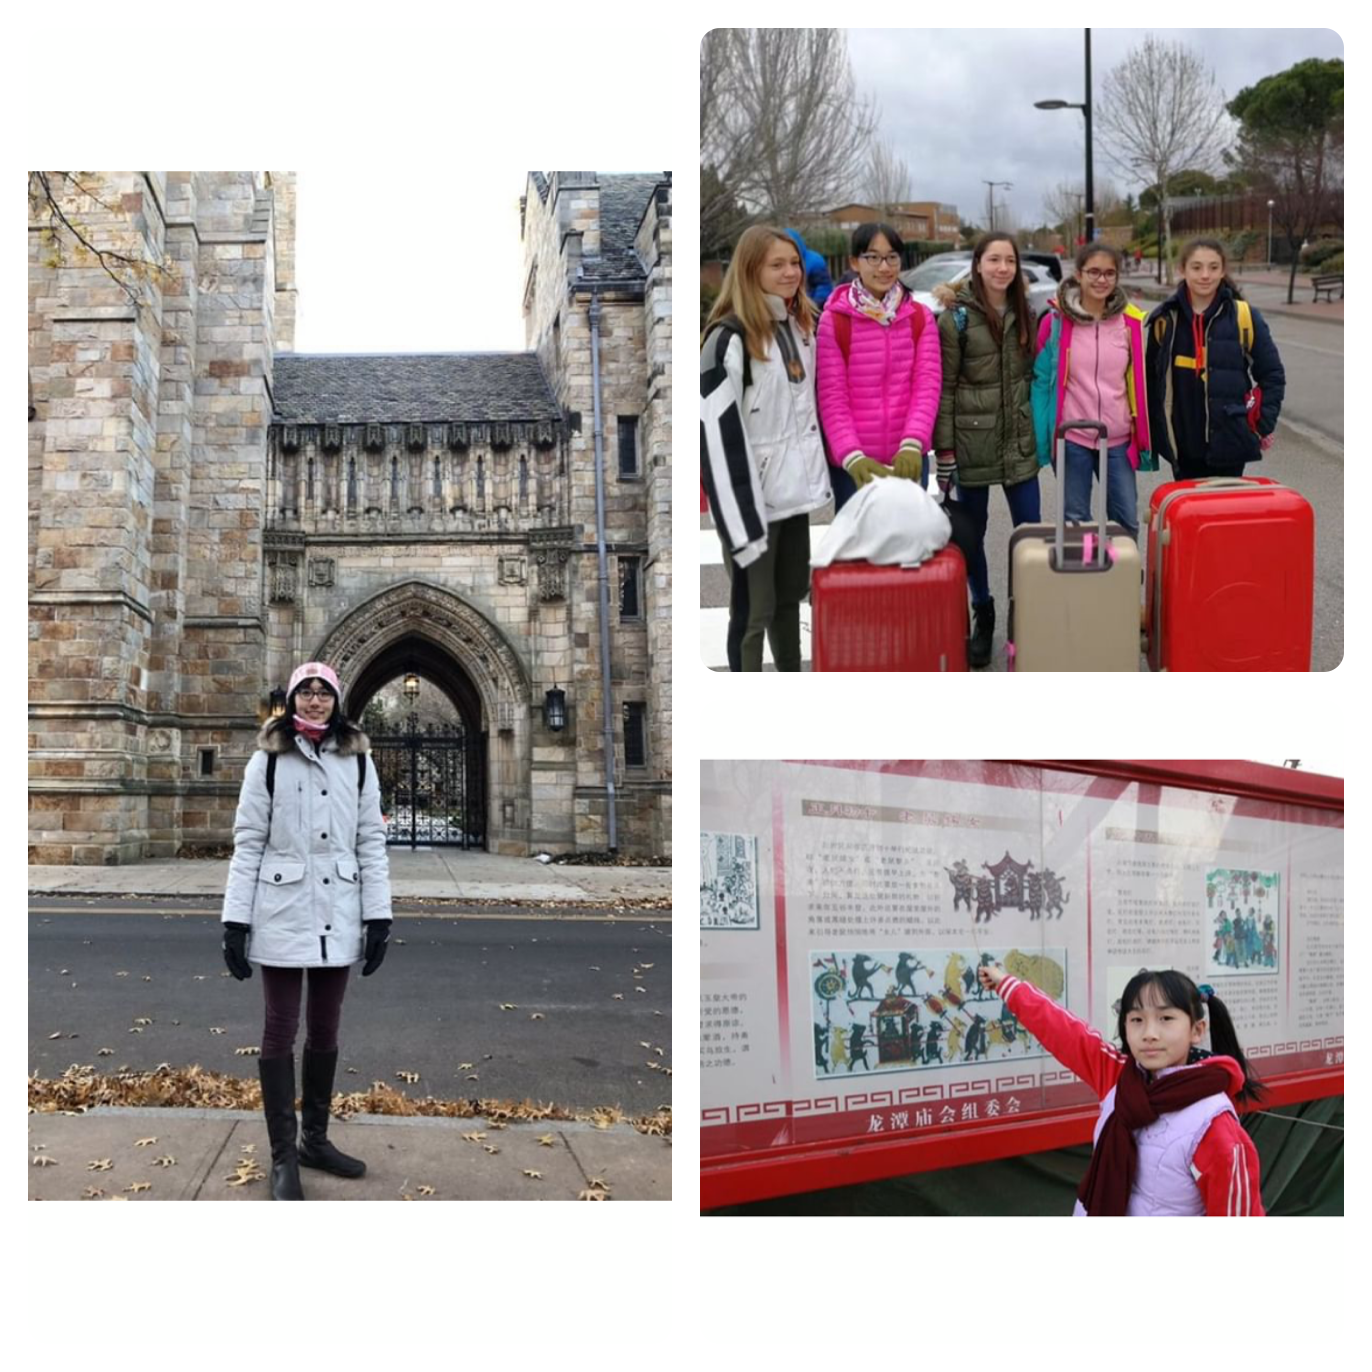 Betty Zhu has lived in three countries, two continents, and different hemispheres. Zhu's dad is a diplomat. In the left photo, Zhu stands in Boston where she admires the architecture. In the top right photo, Zhu is surrounded by her friends in Spain before they go on a ski trip. On the bottom right photo, Zhu points to a sign that showcases some local history in China. Photo courtesy of Zhu.